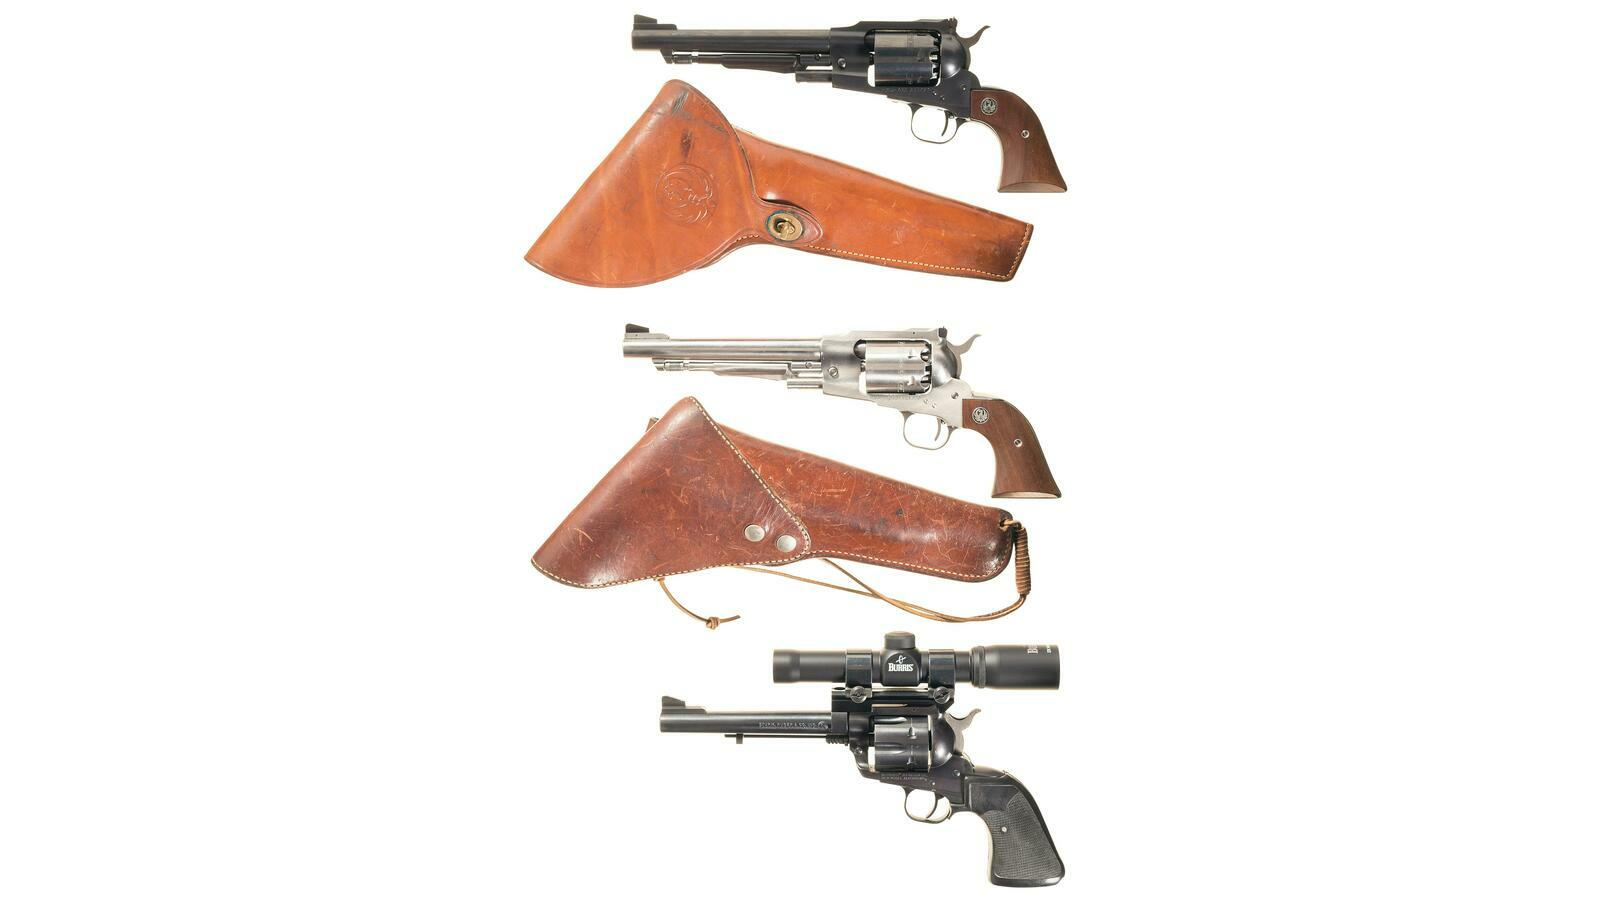 Three Ruger Single Action Revolvers with Holsters